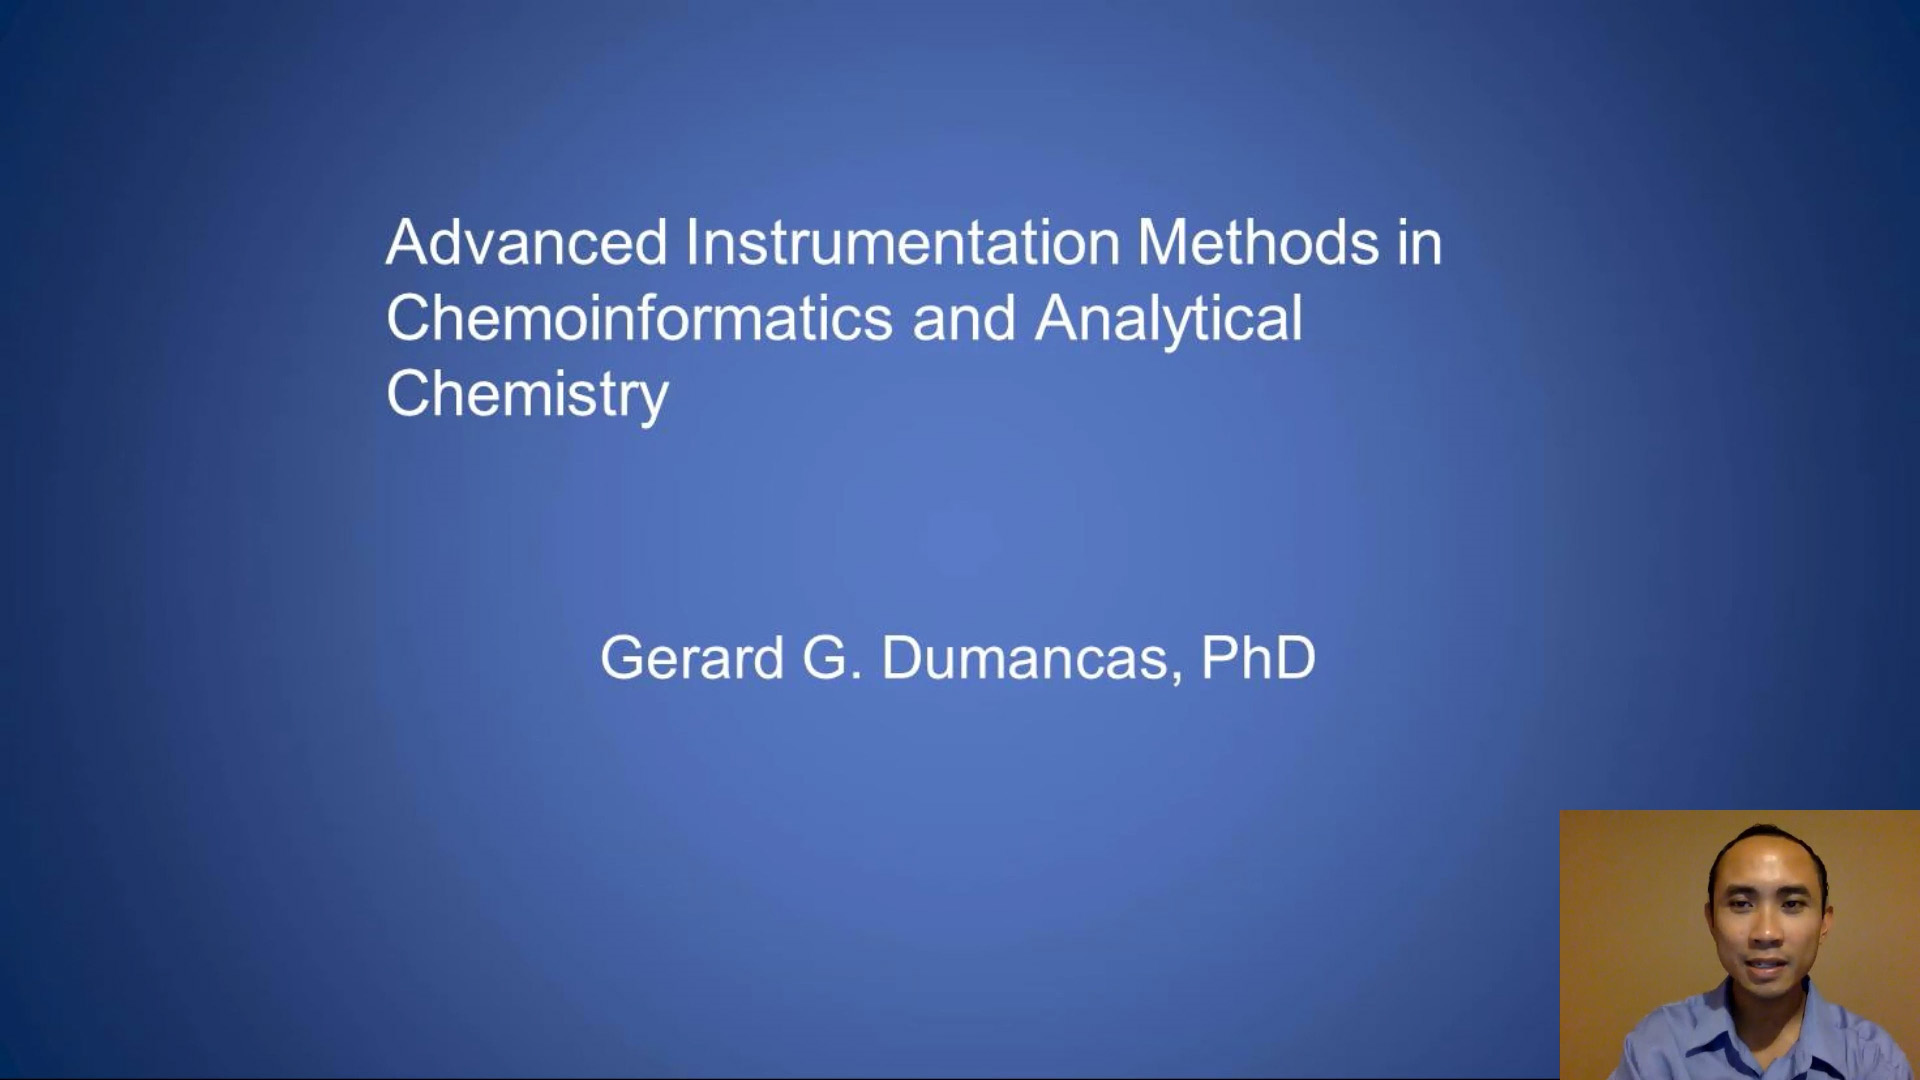 Advanced Instrumentation Methods in Chemoinformatics and Analytical Chemistry